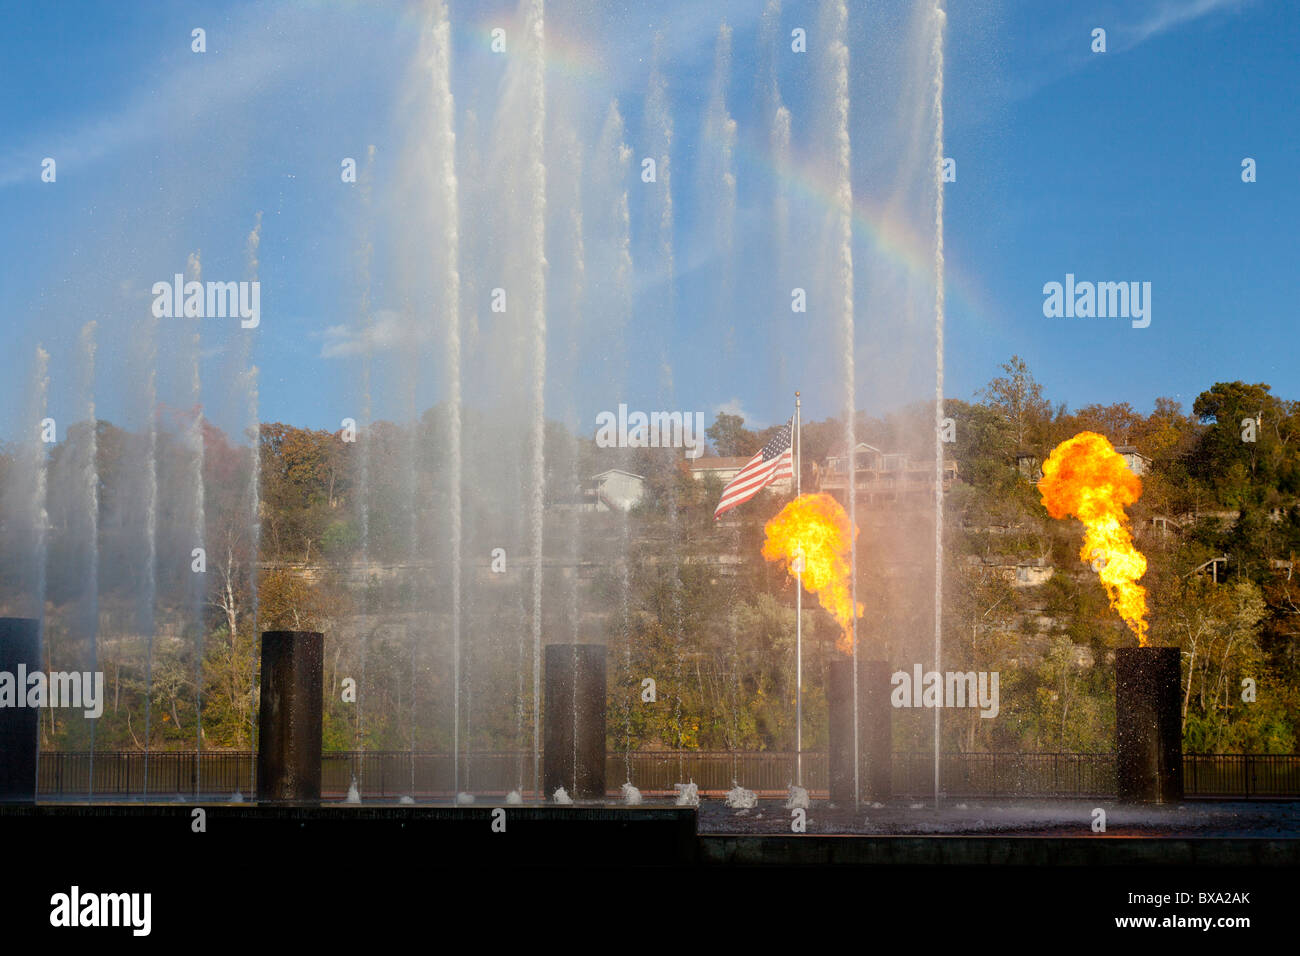 The decorative fire and water fountain at the Branson Landing shopping center in Branson, Missouri, USA. - Stock Image